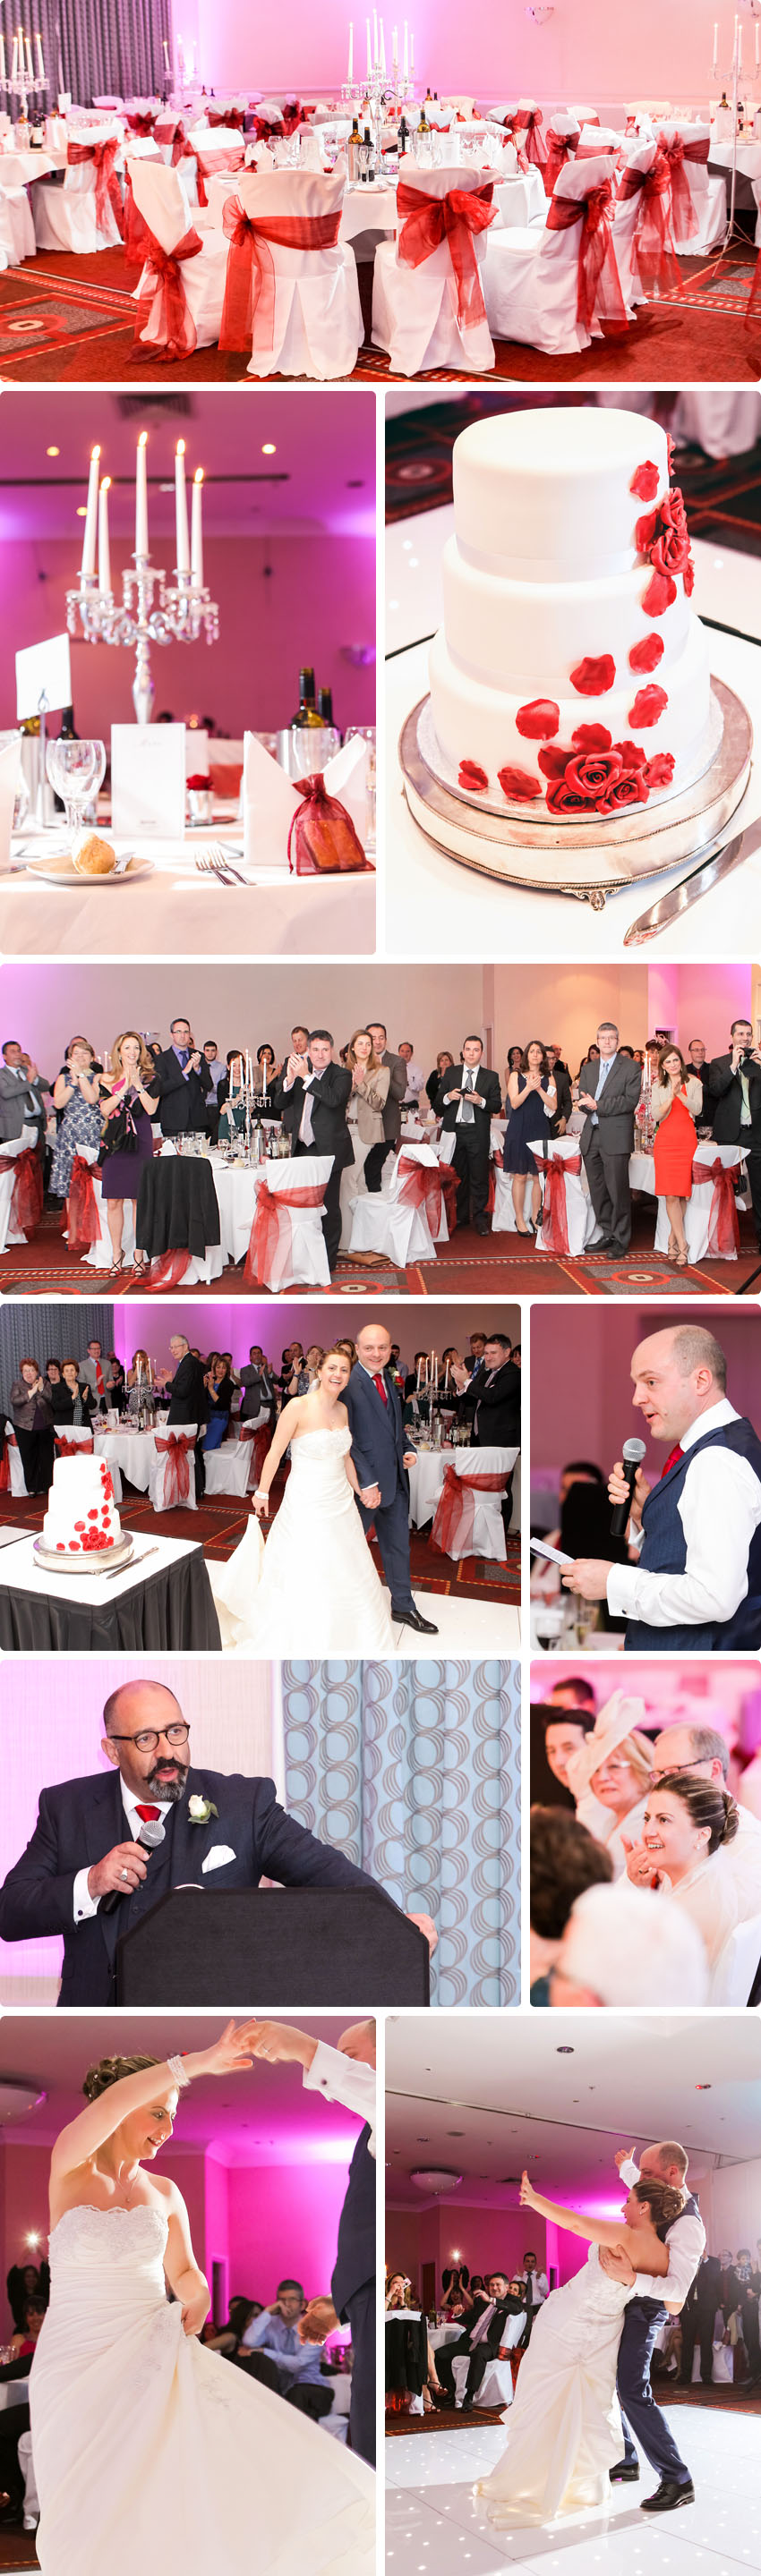 Reception snapshots - Wedding at Waltham Abbey Marriott Hotel 05